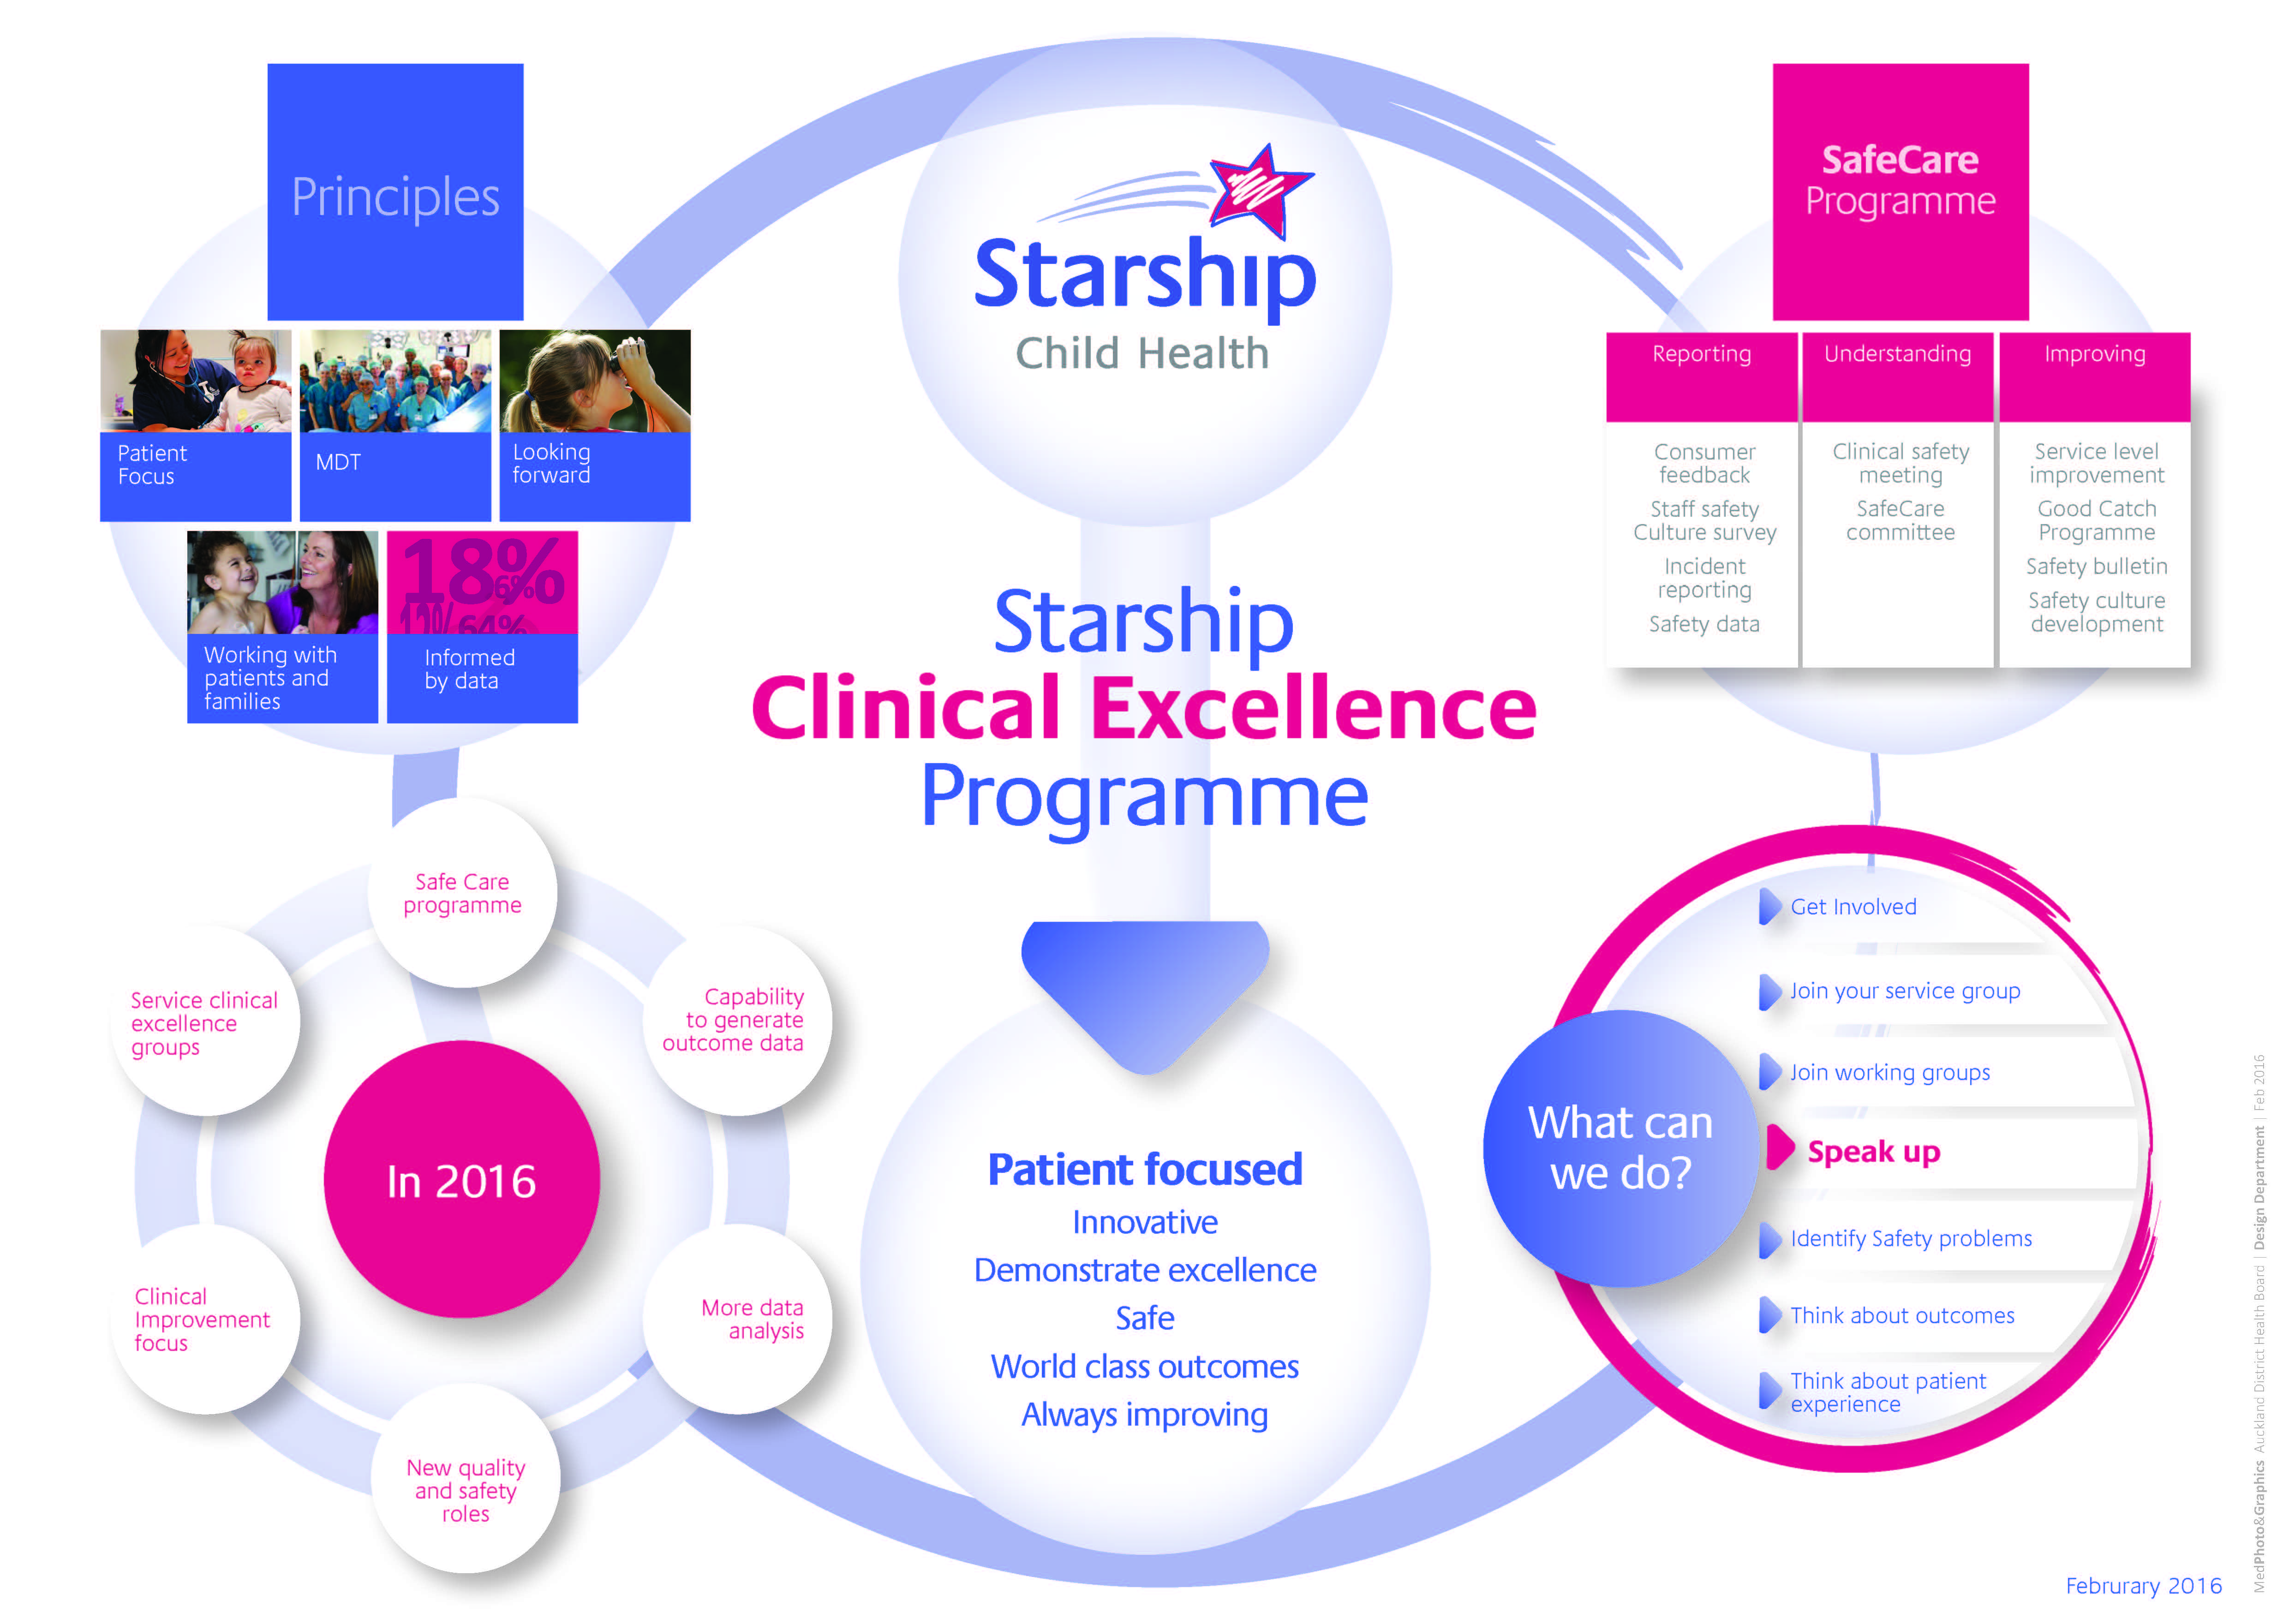 Starship Clinical Excellence Programme